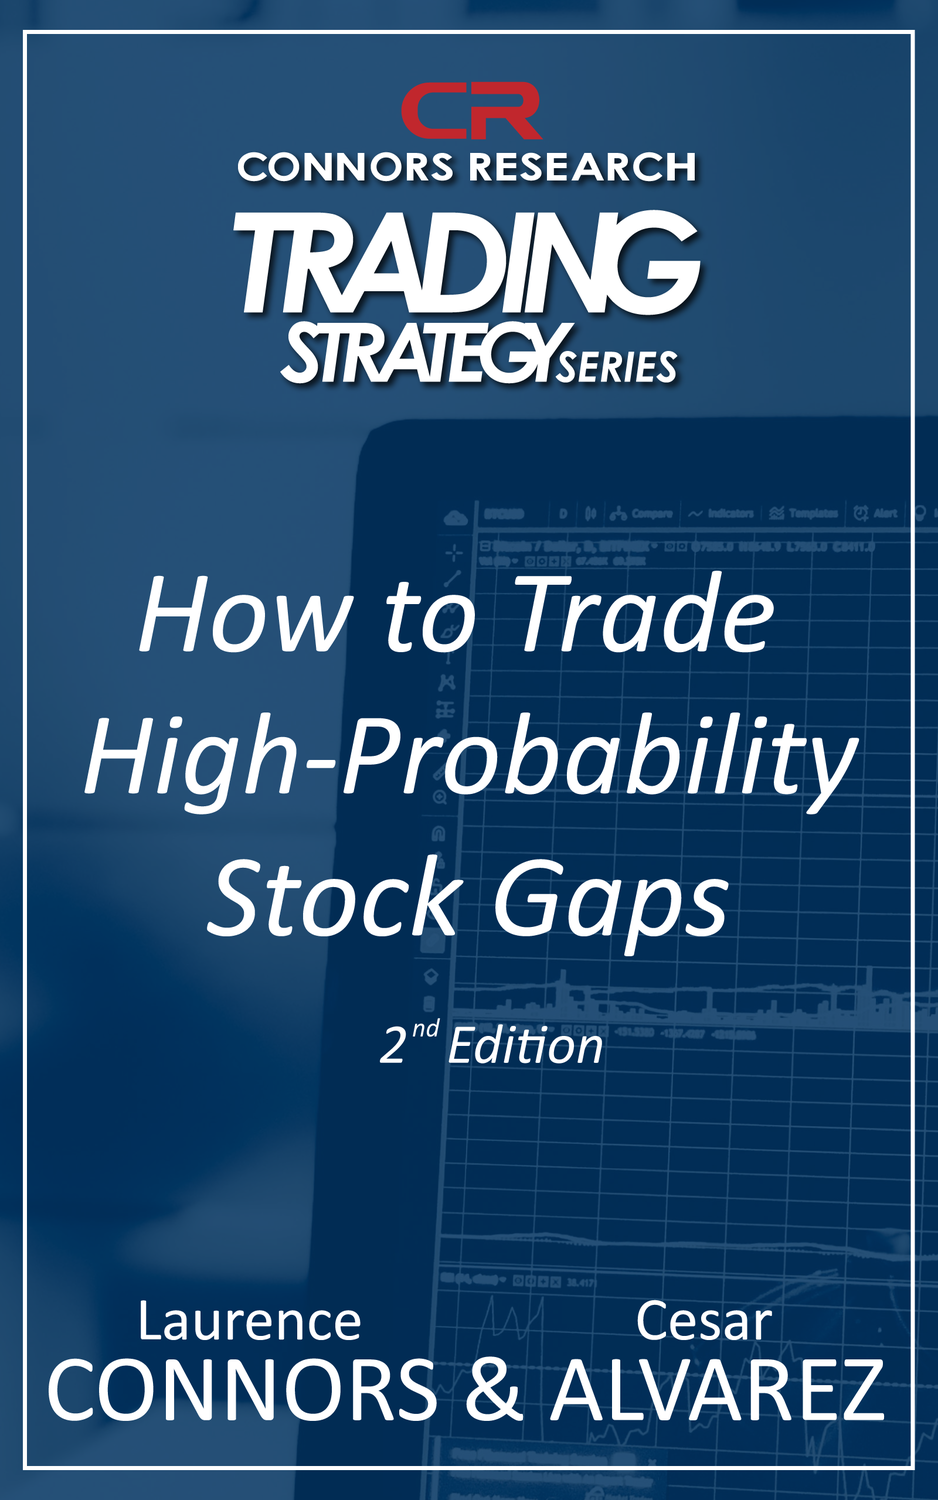 Connors Research Trading Strategy Series: How to Trade High Probability Stock Gaps 2nd Edition